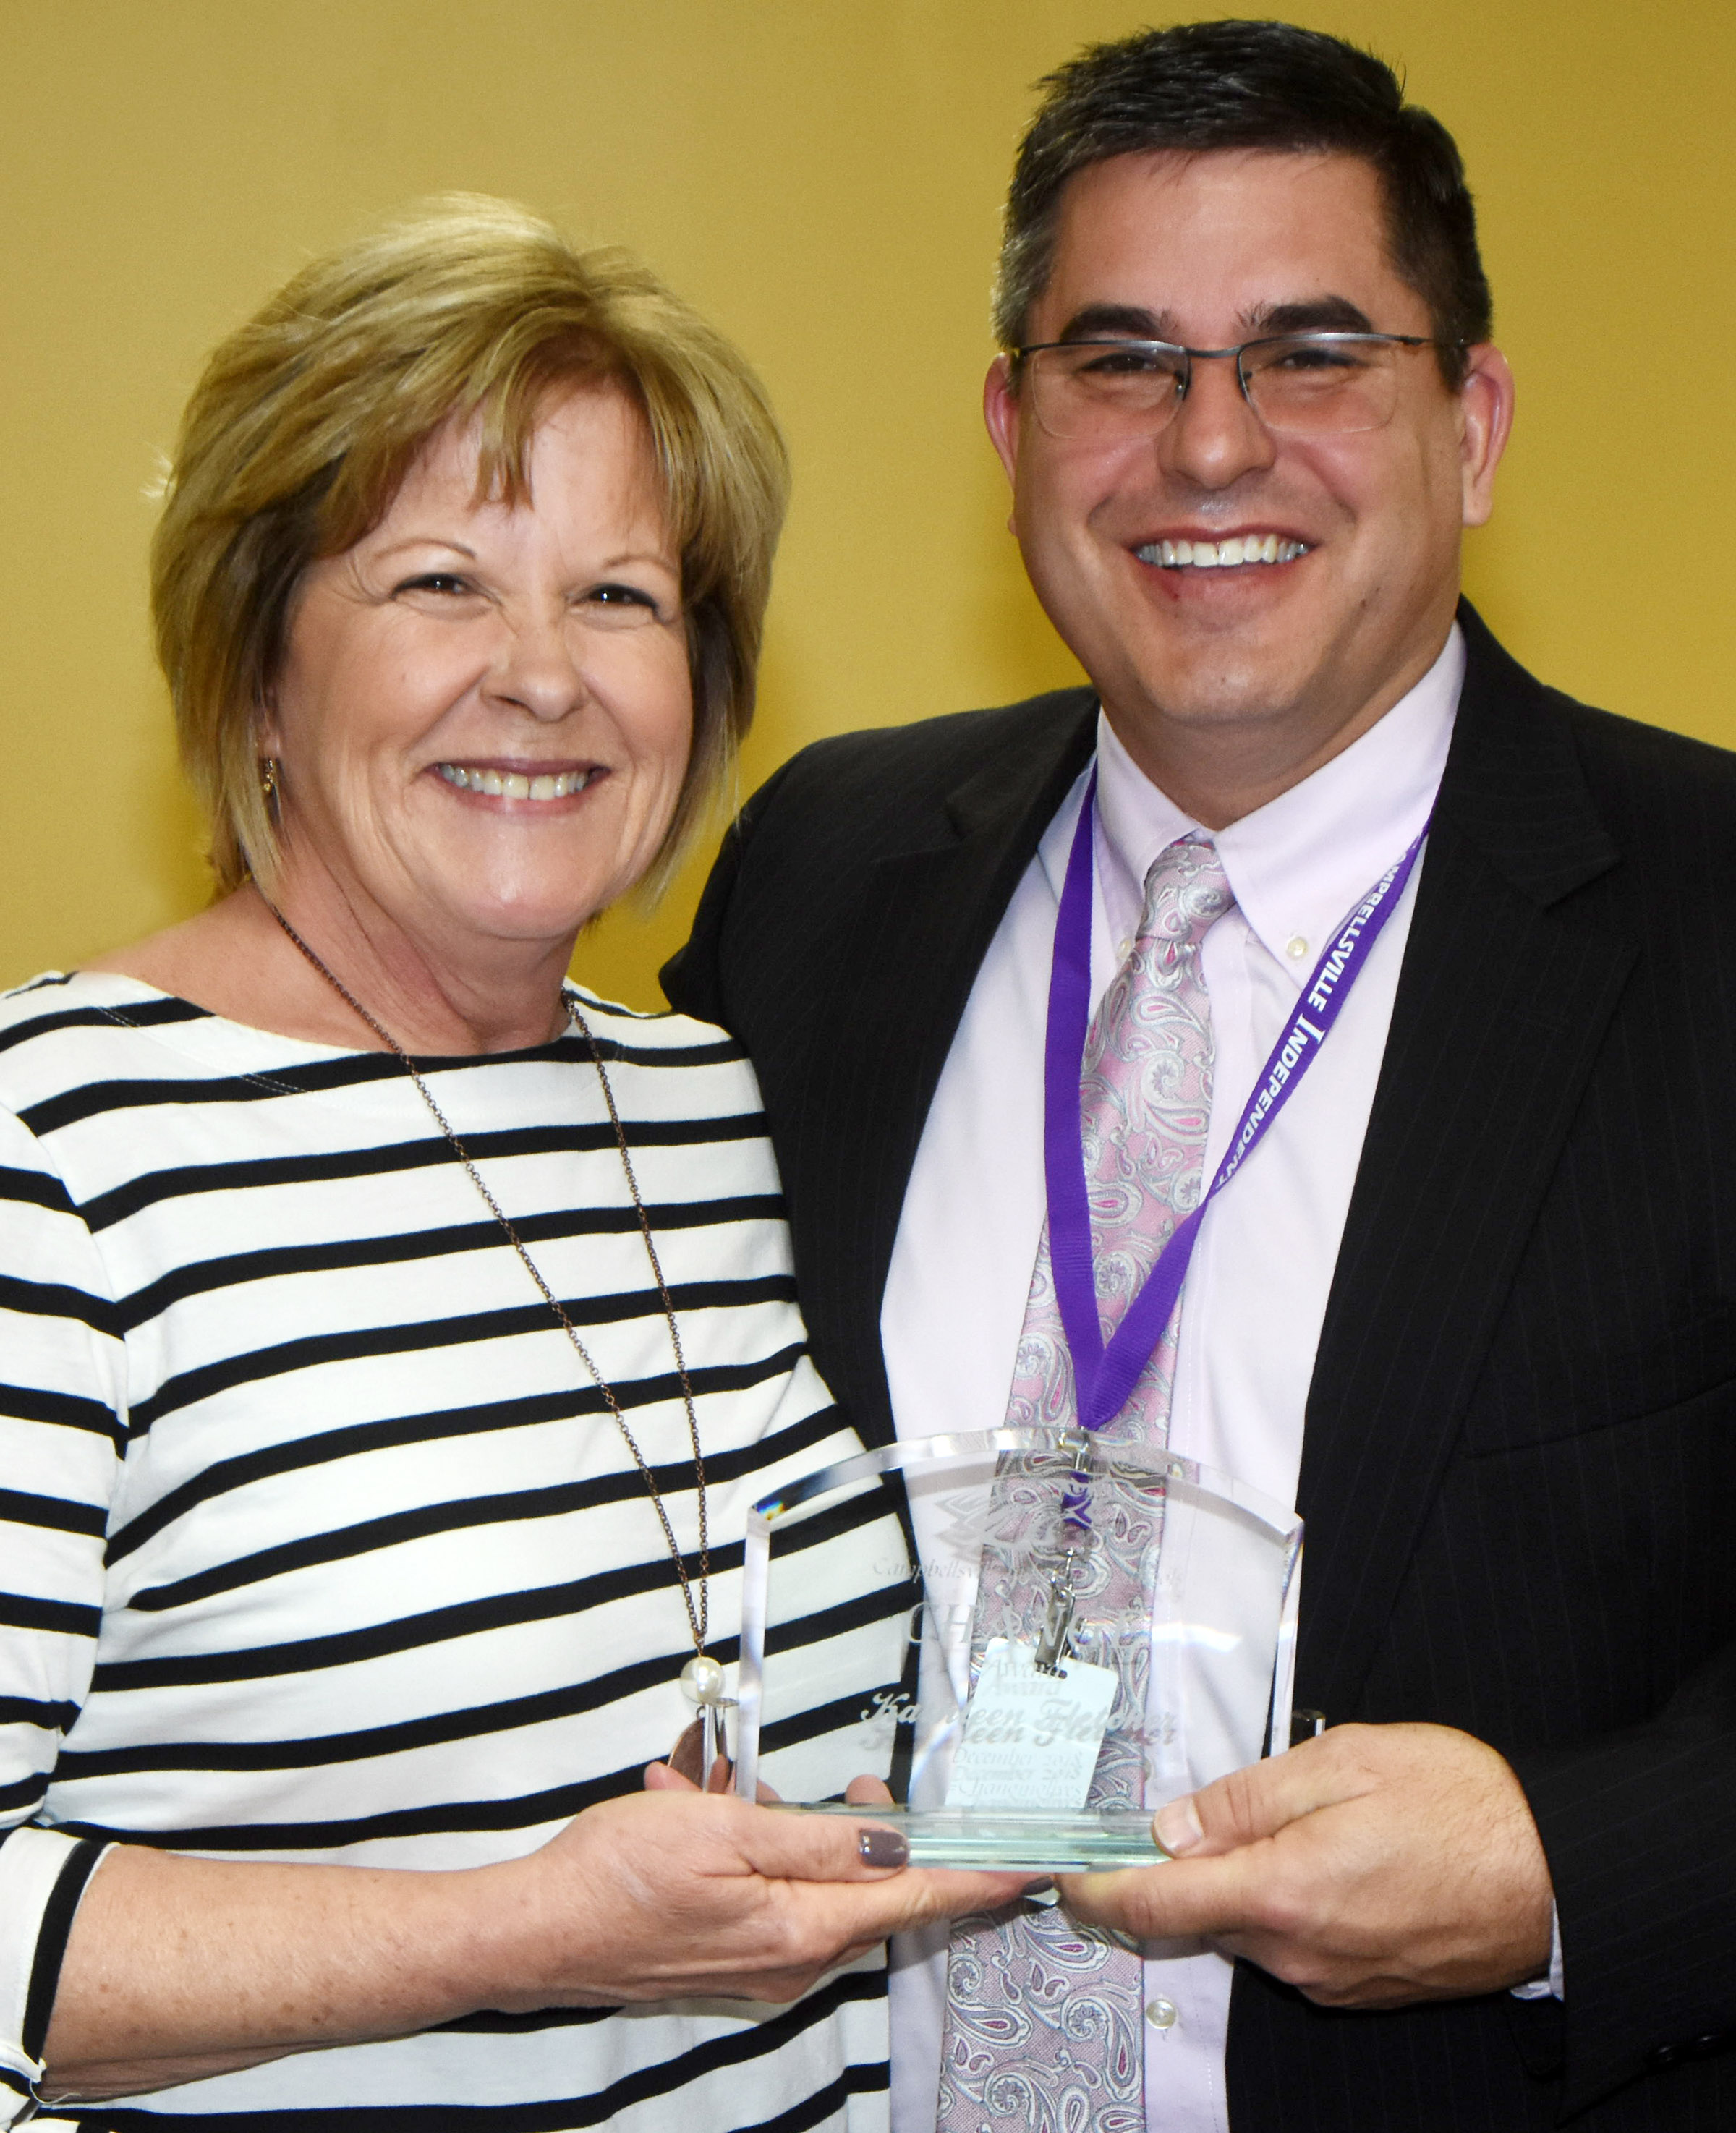 Campbellsville Independent Schools Superintendent Kirby Smith honors Campbellsville FRYSC Advisory Council member Kathleen Fletcher with the community Change Award.